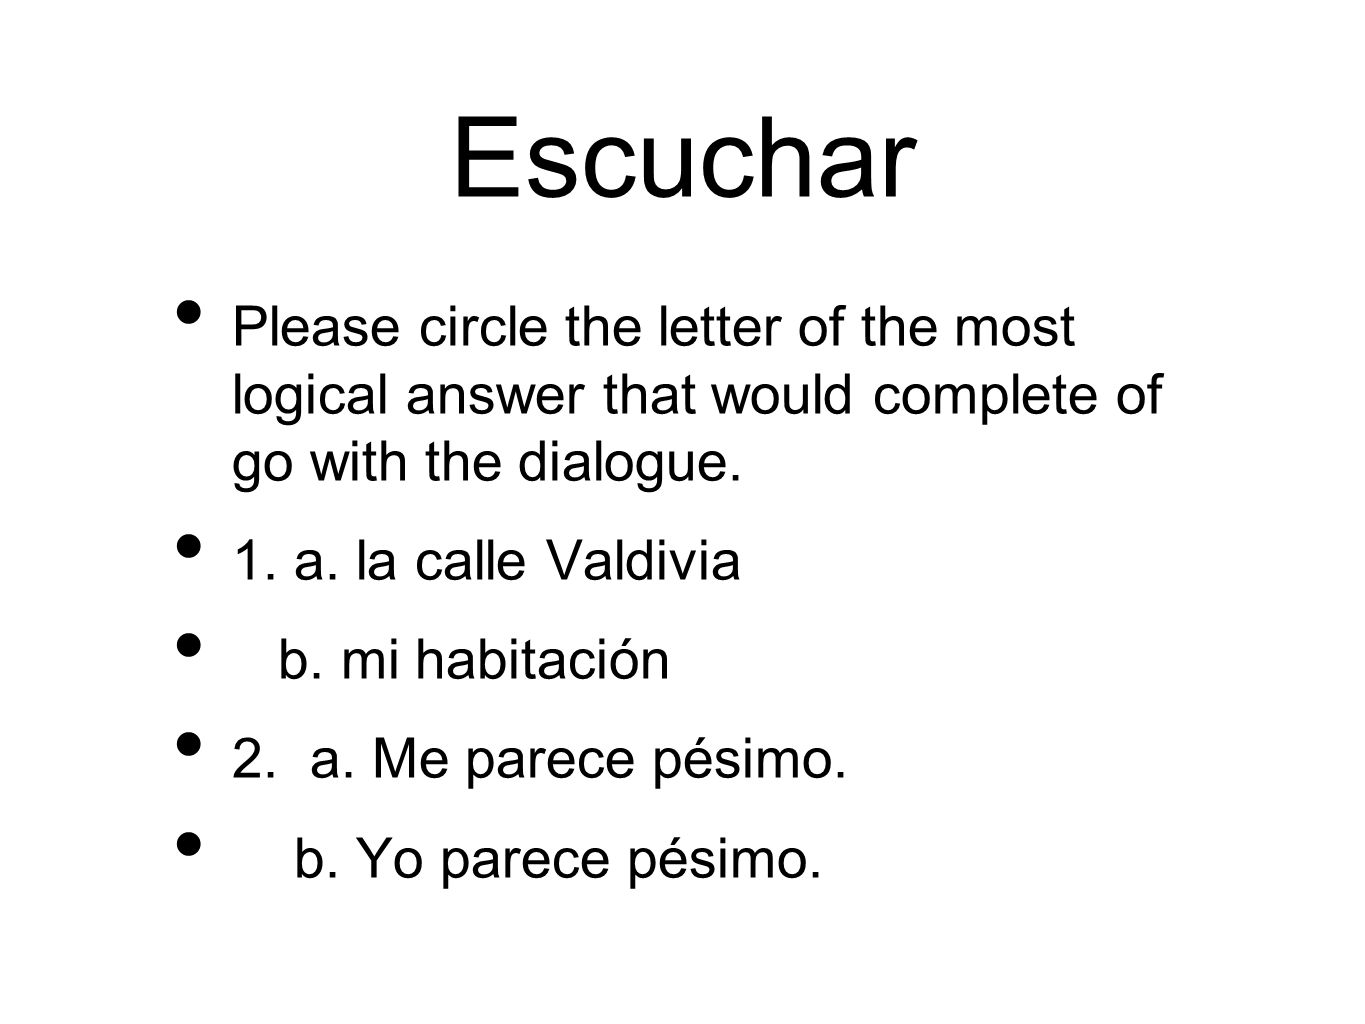 Escuchar Please circle the letter of the most logical answer that would complete of go with the dialogue. 1. a. la calle Valdivia b. mi habitación 2.